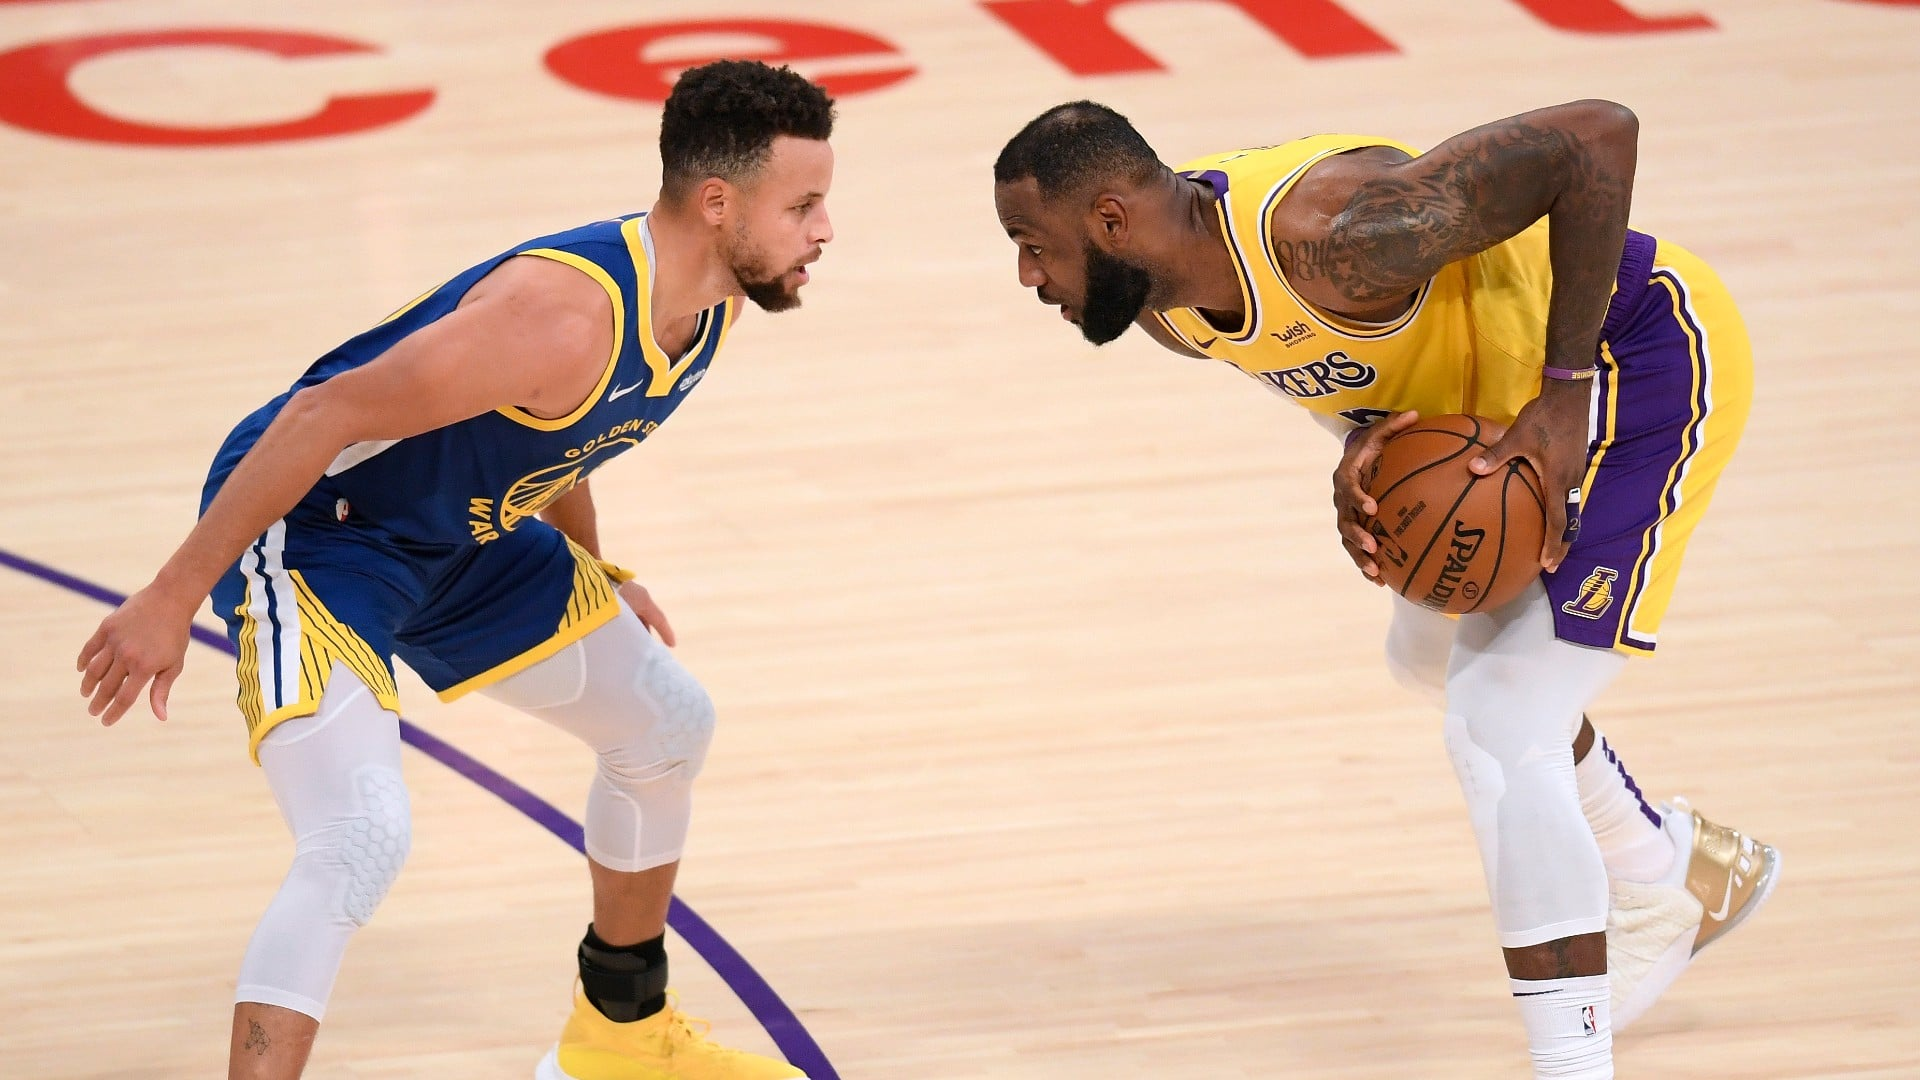 lakers-vs-warriors-safe-results-lebron-james-take-hang-of-3-pointer-lifts-los-angeles-previous-golden-narrate.jpg